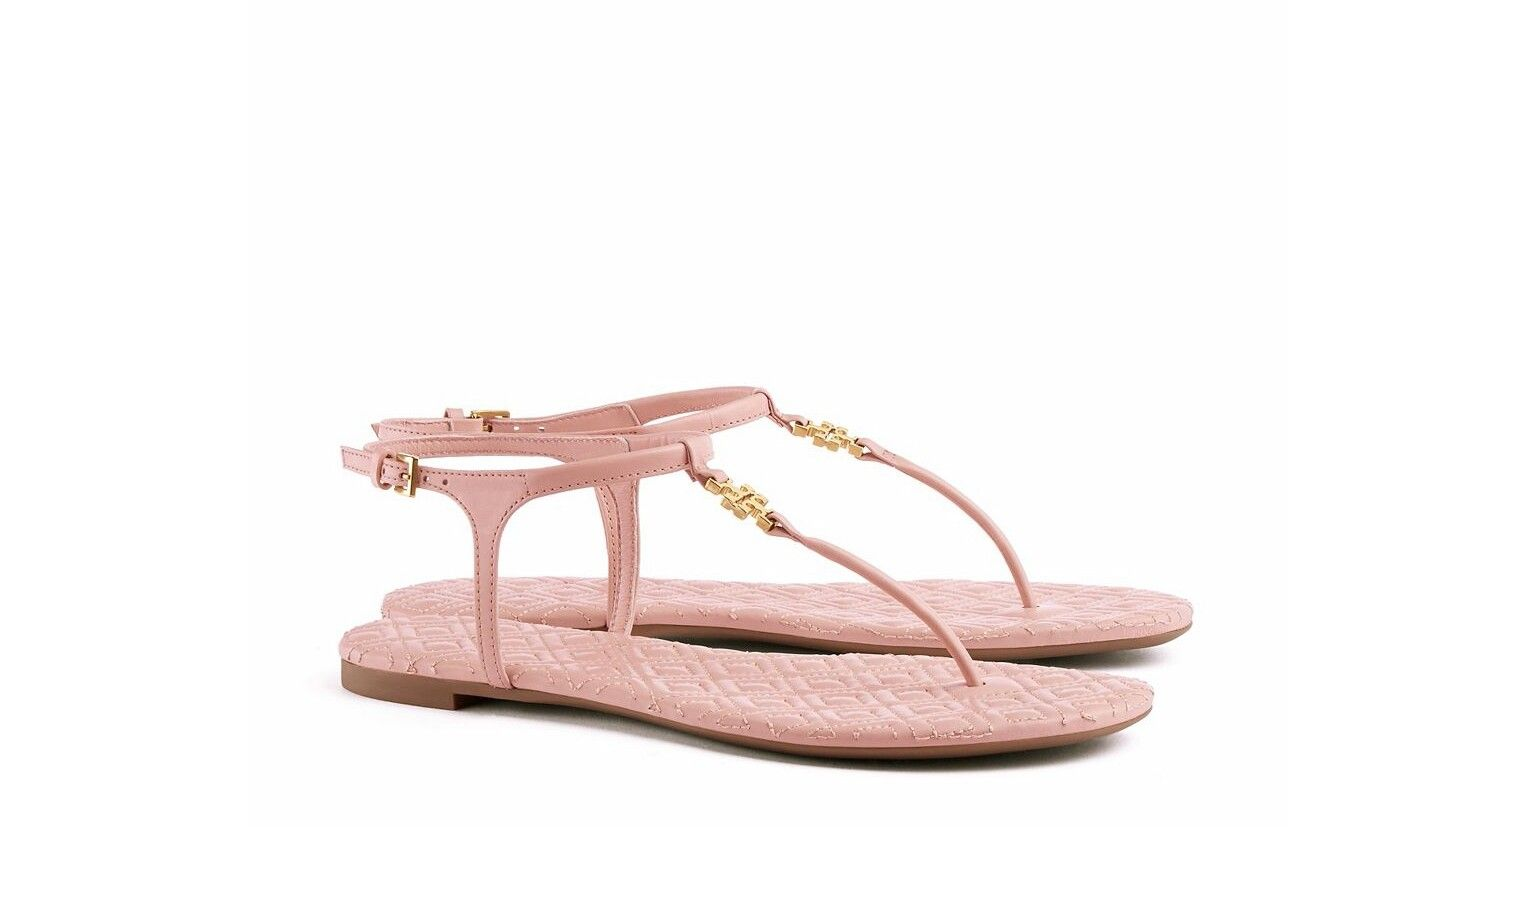 f6fa6bdd8005 Shop TORY BURCH for shoes including ballet flats